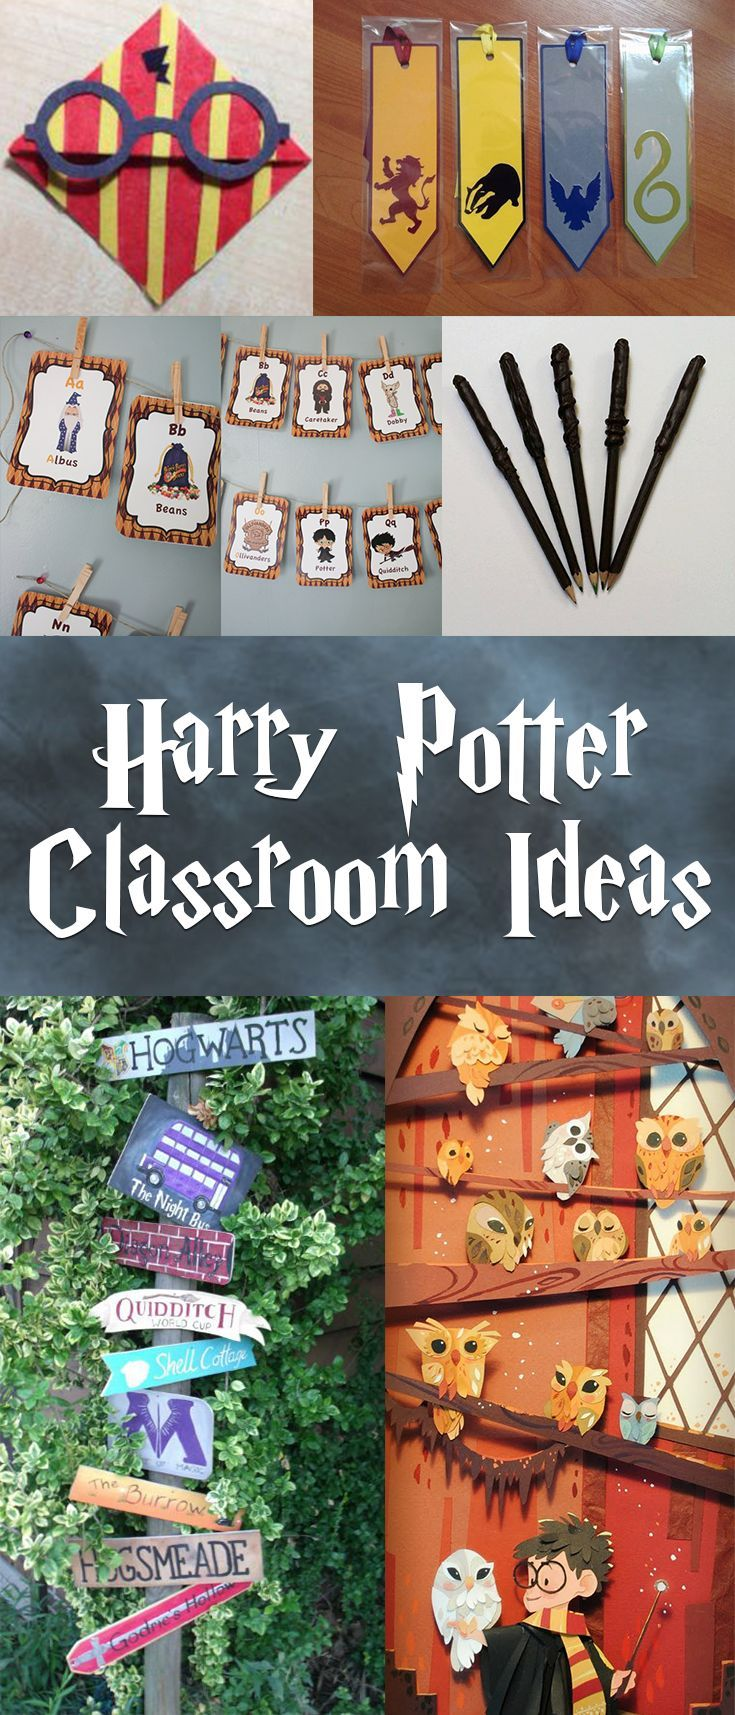 11 Harry Potter-Themed Classroom Decorations and Crafts - Crafting DIY Center